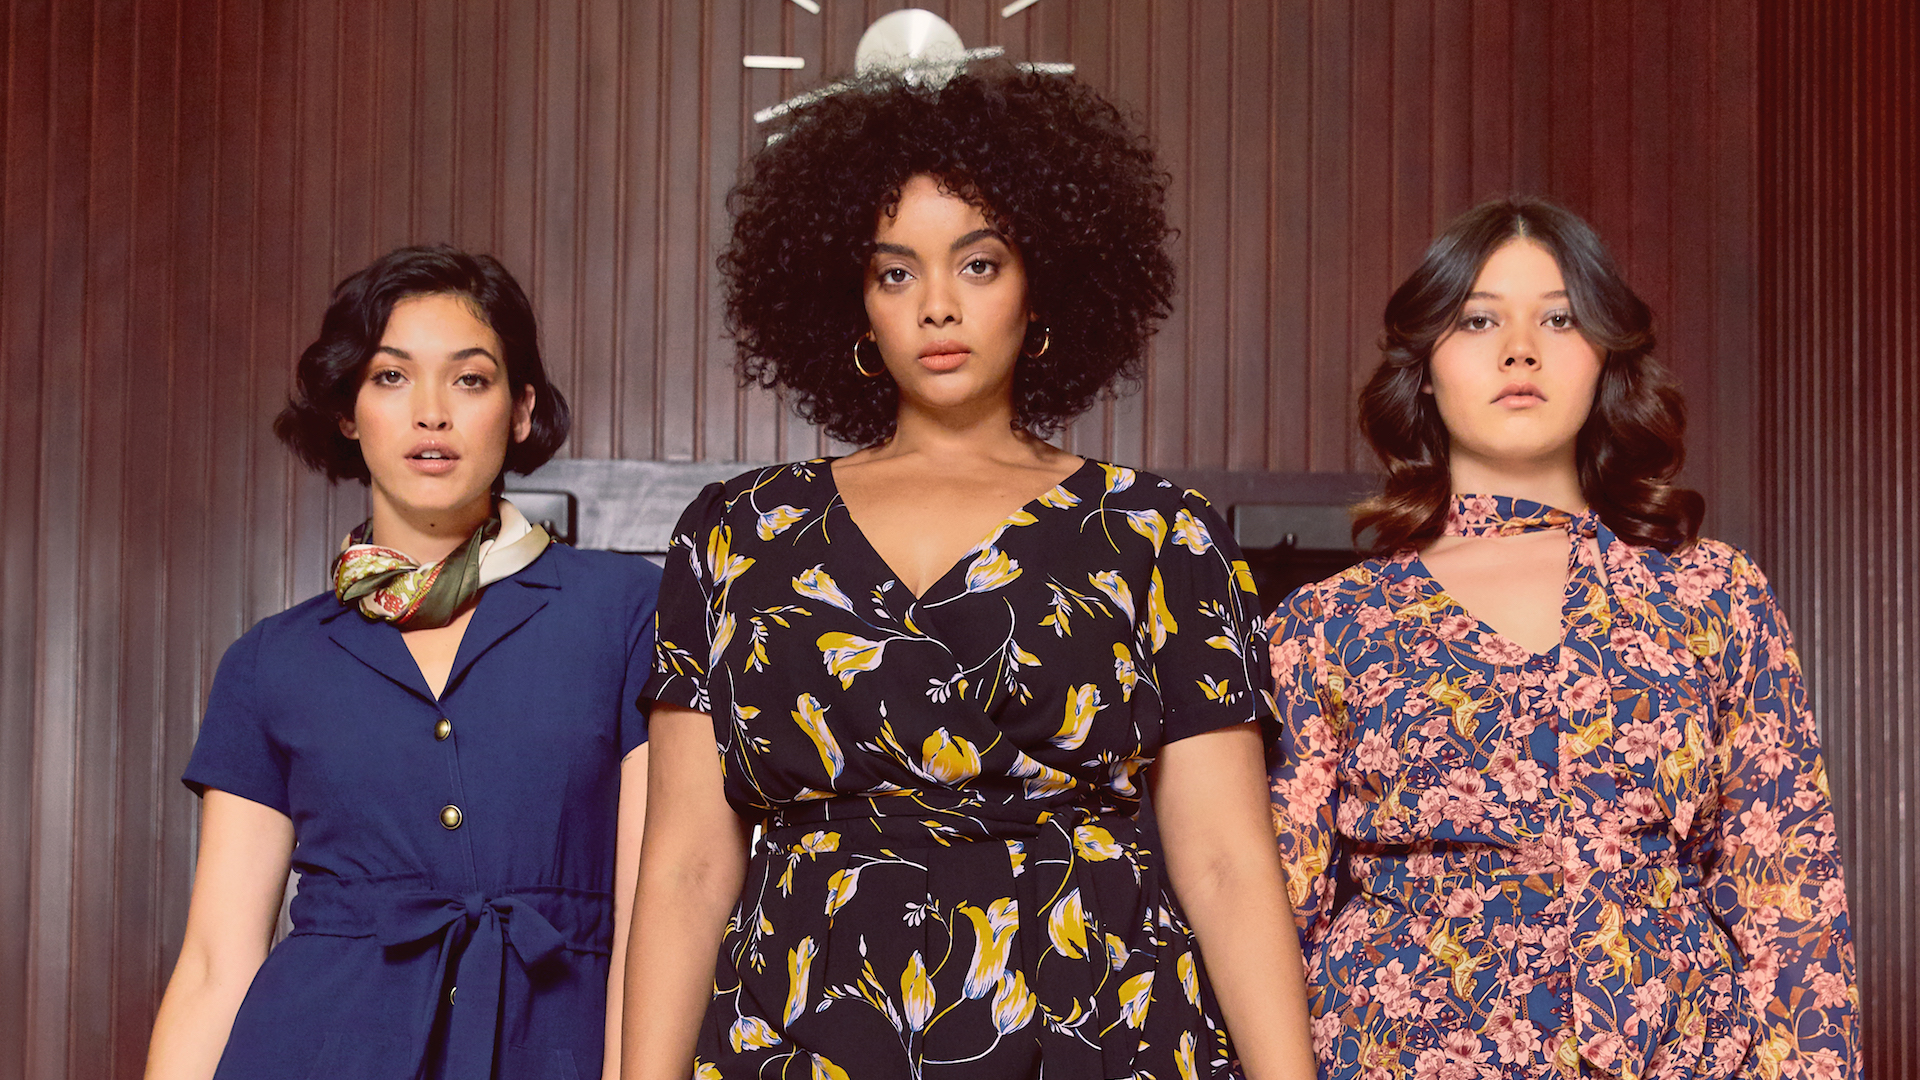 Modcloth's New 'Show Them Who's Boss' Collection Will Make You Feel Like a Total Badass